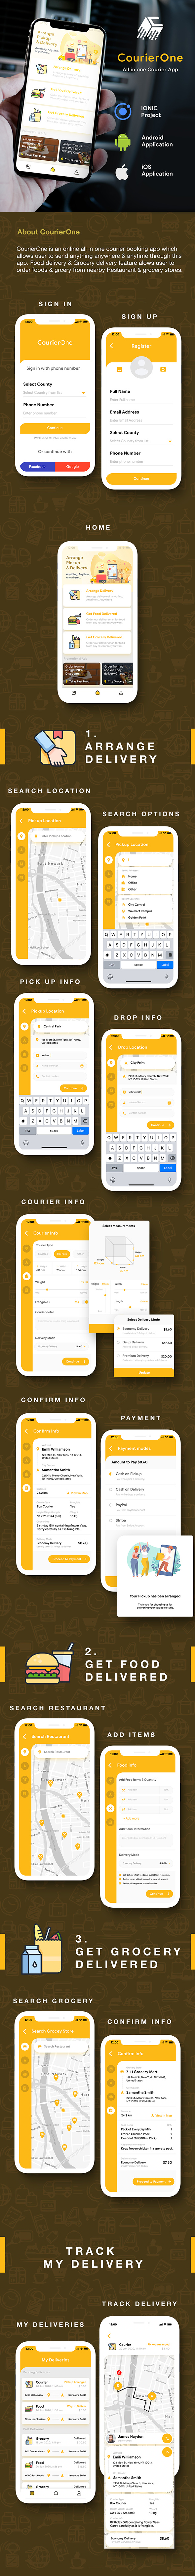 Courier Delivery Android App Template + Custom Courier iOS App Template |2 Apps| IONIC 5 CourierOne Download